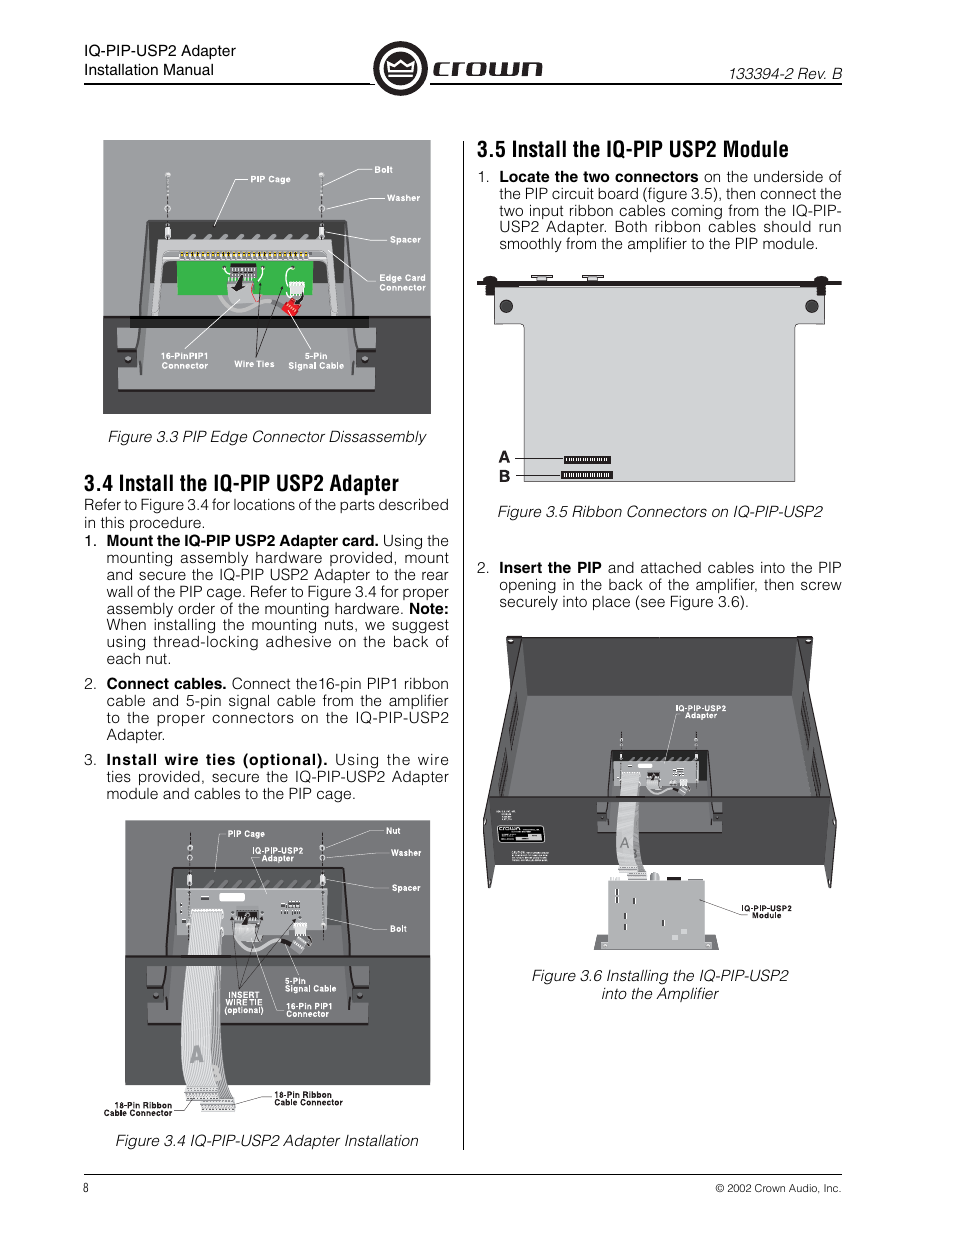 4 install the iq-pip usp2 adapter, 5 install the iq-pip usp2 module | Crown  Audio IQ-PIP-USP2 Adapter User Manual | Page 8 / 12